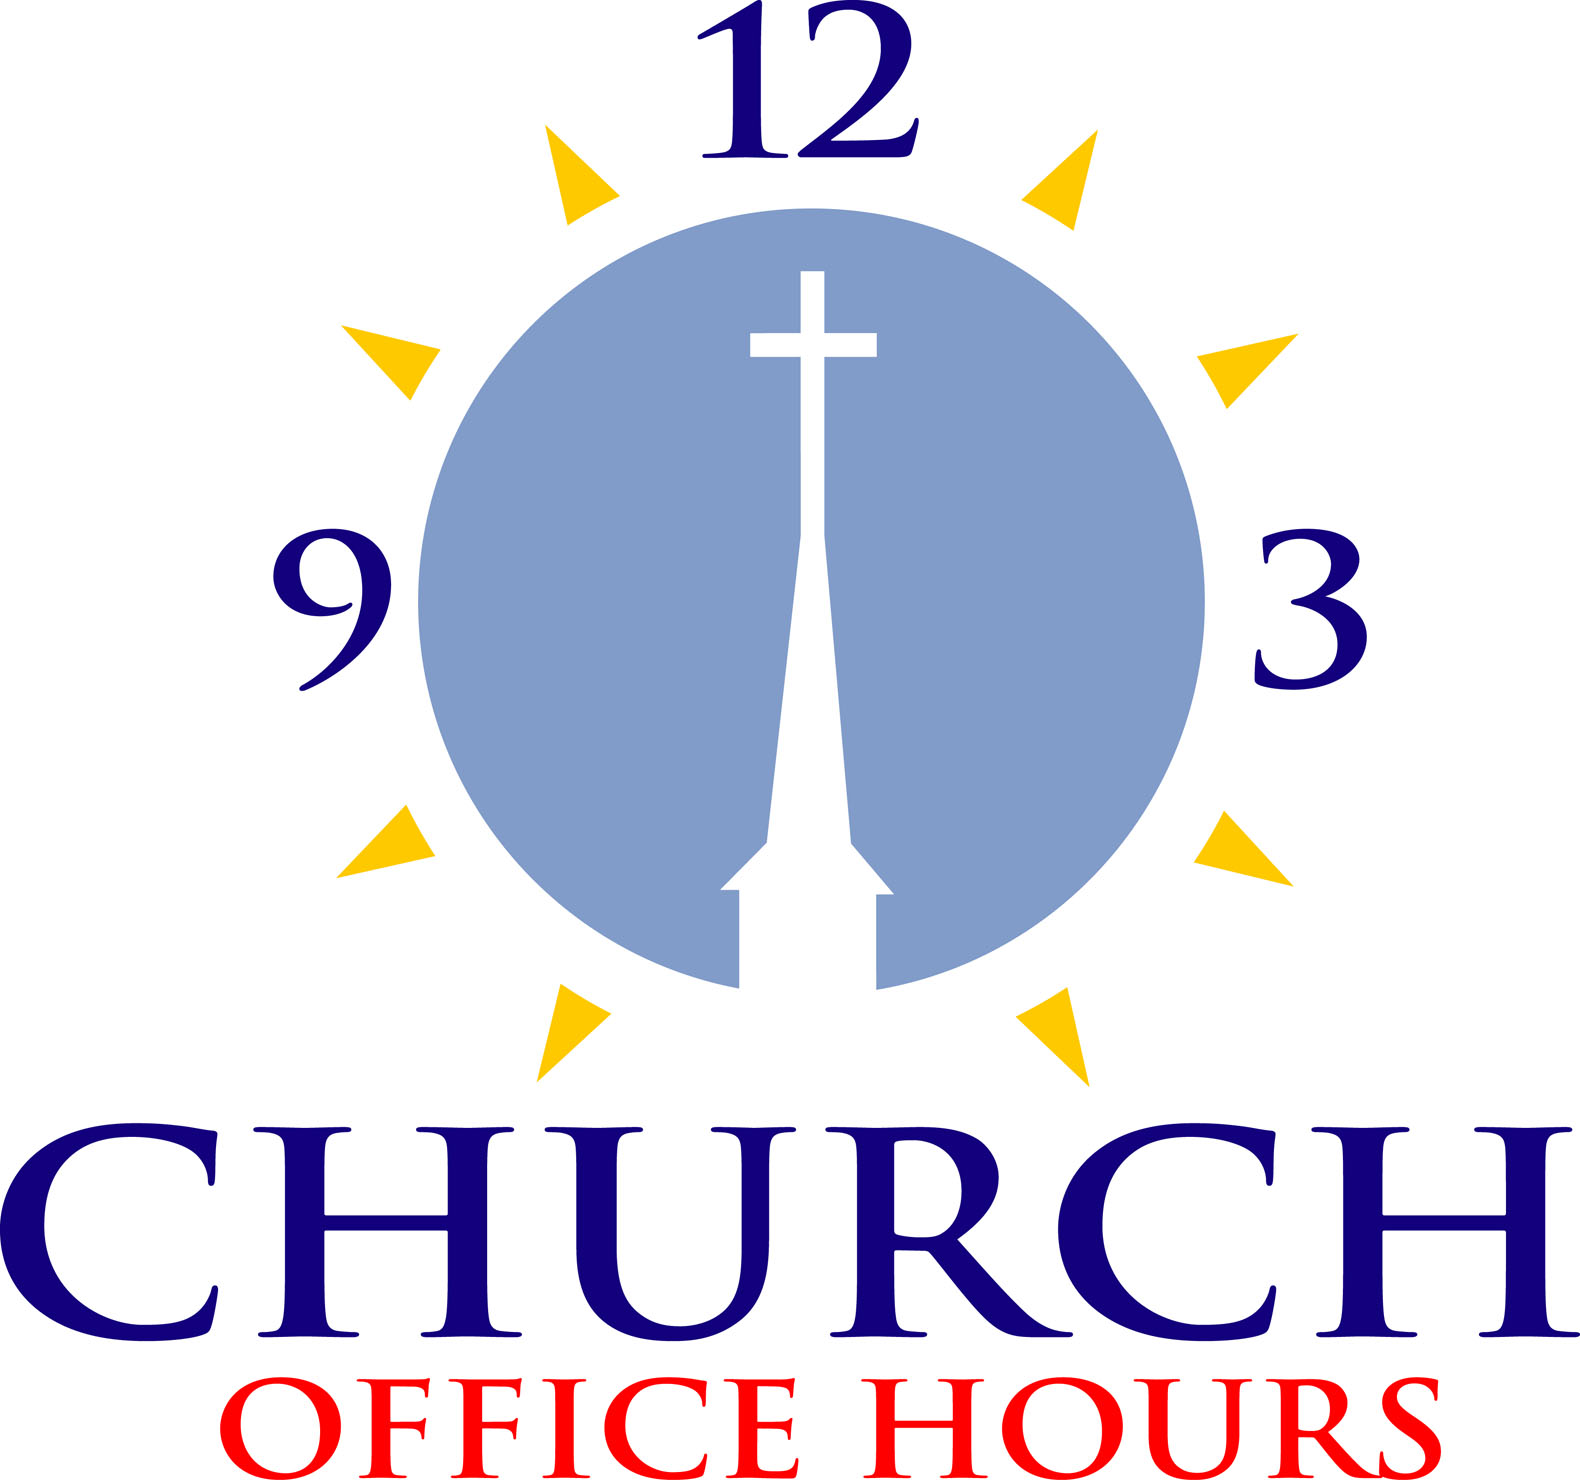 Church office hours clipart image #4902.